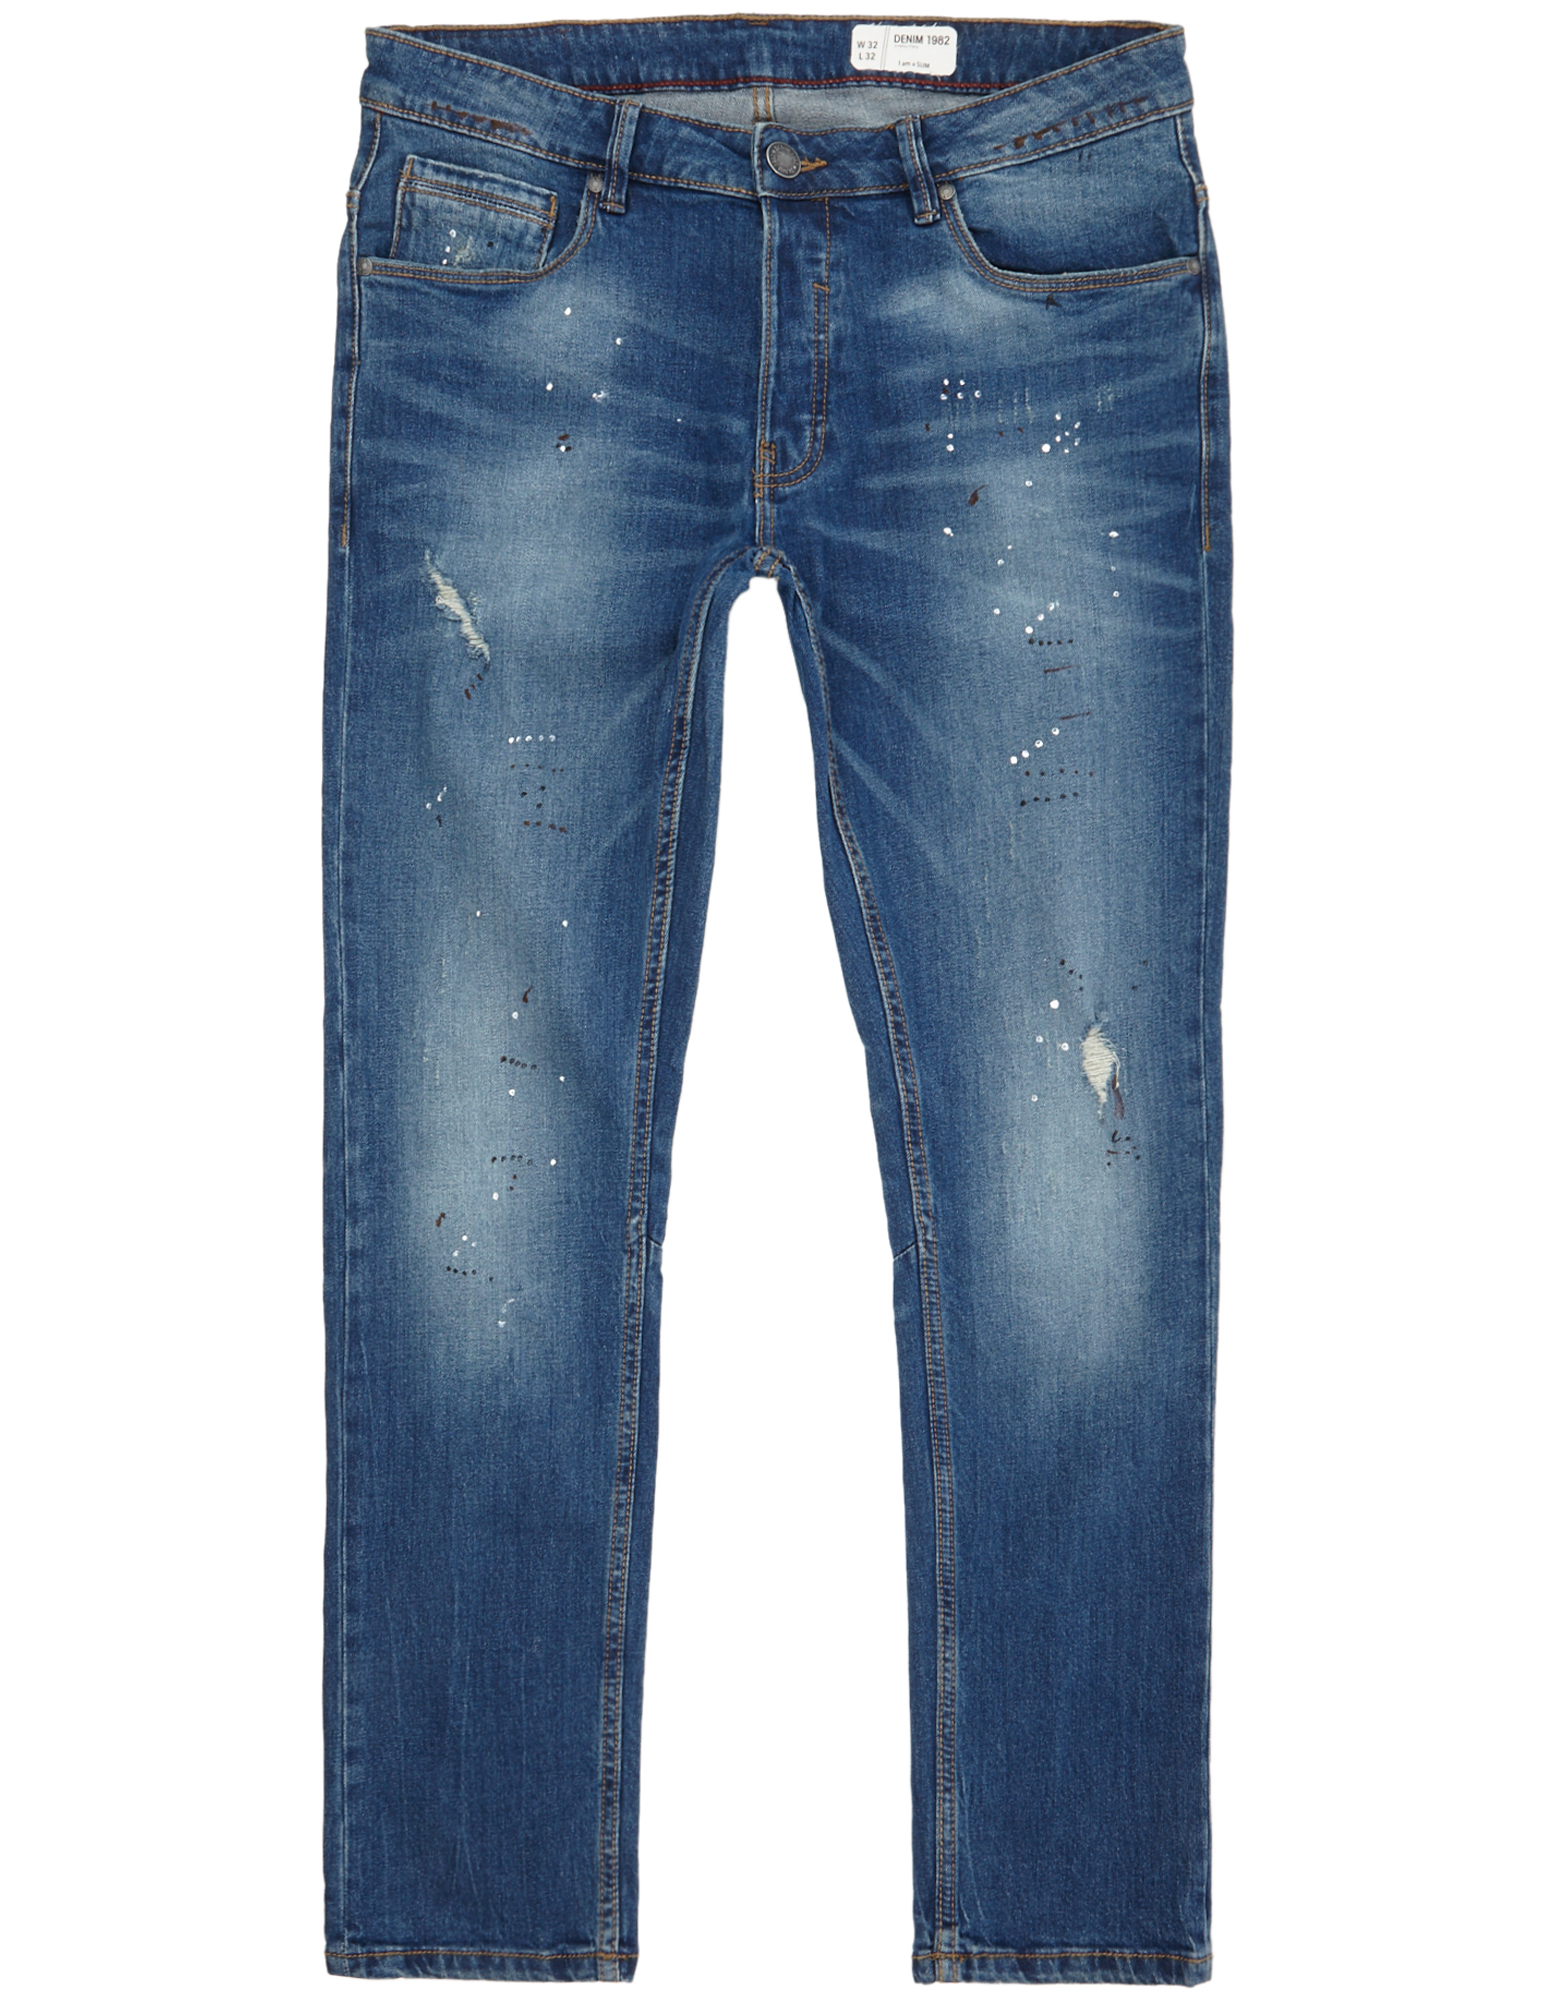 Herren Stone Washed Slim Fit Jeans im Destroyed Look  | 81509969940402